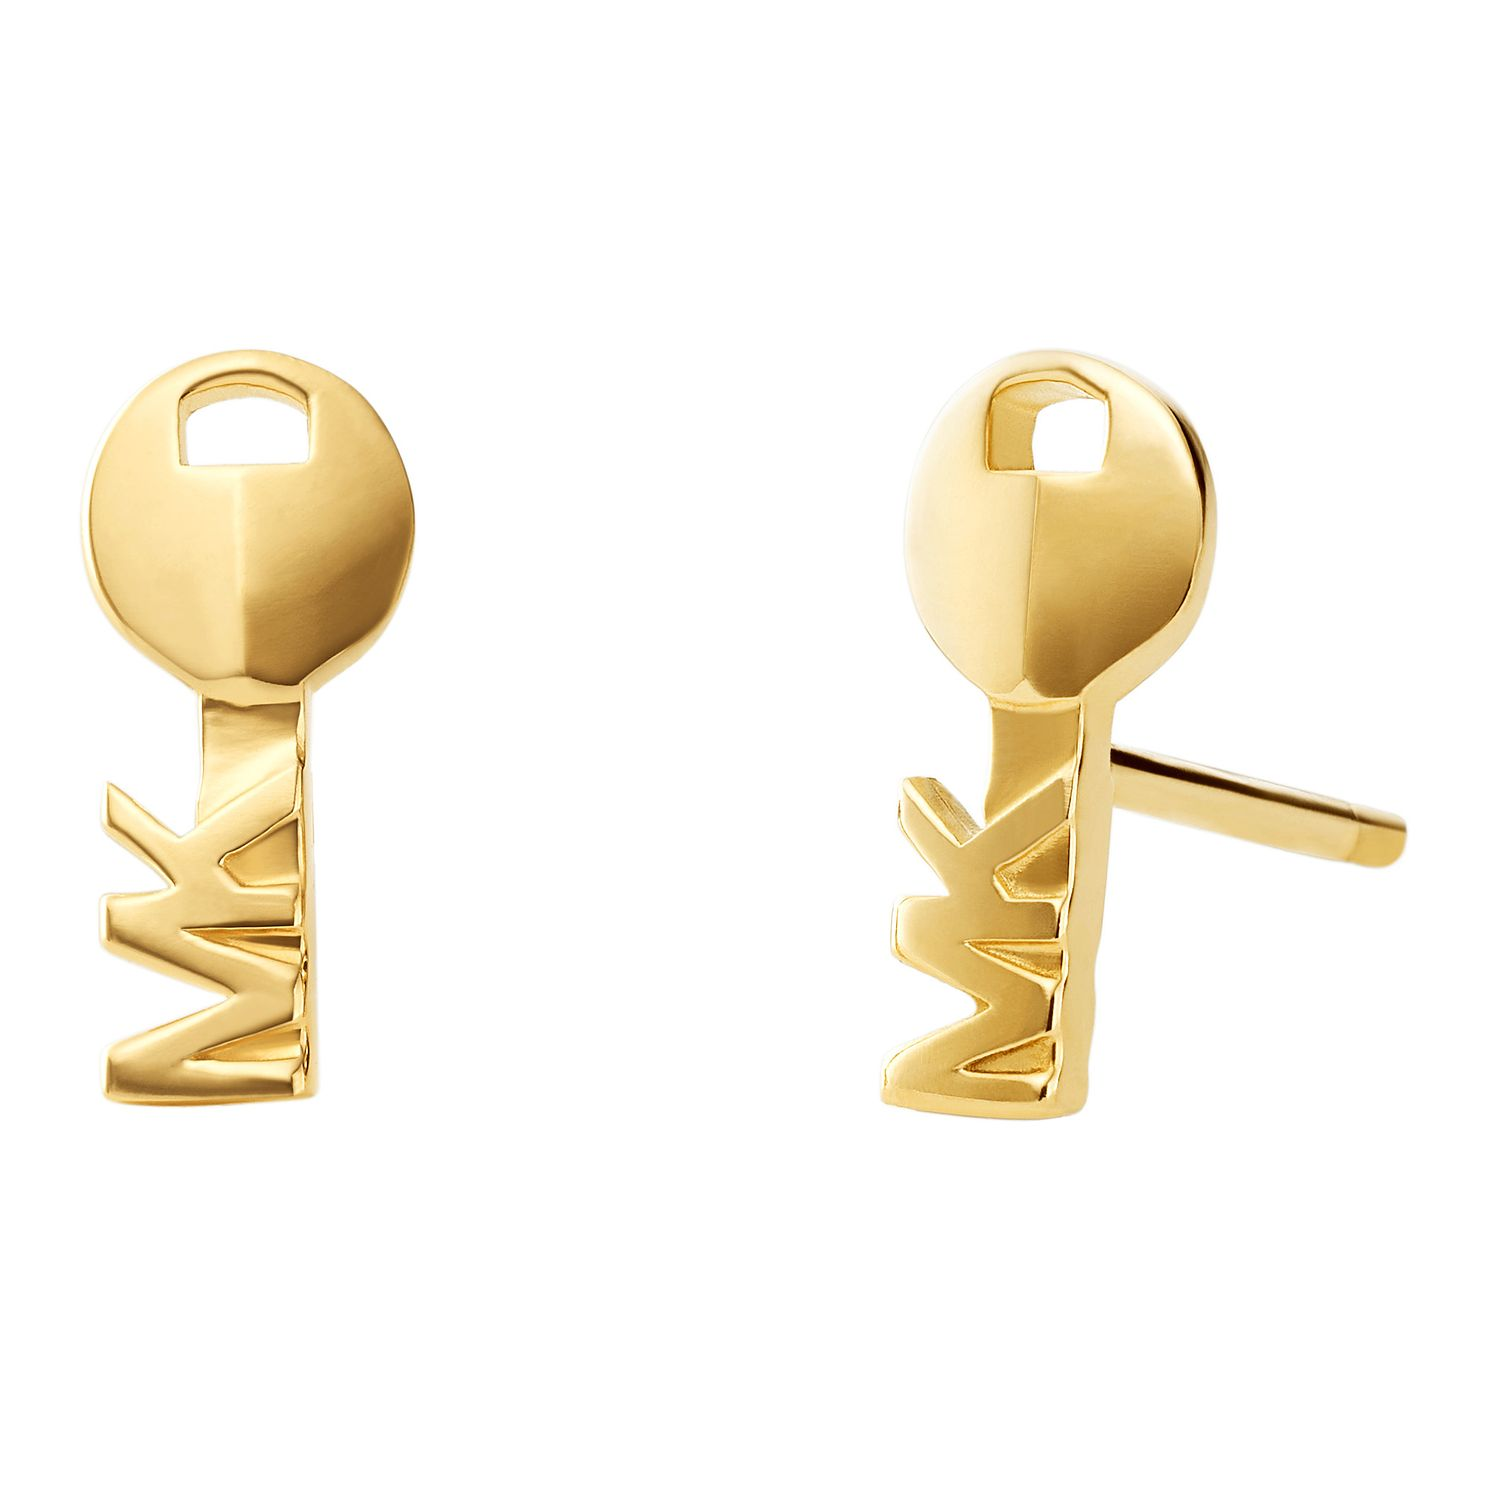 Michael Kors 14ct Yellow Gold Plated Silver Stud Earrings - Product number 9801723